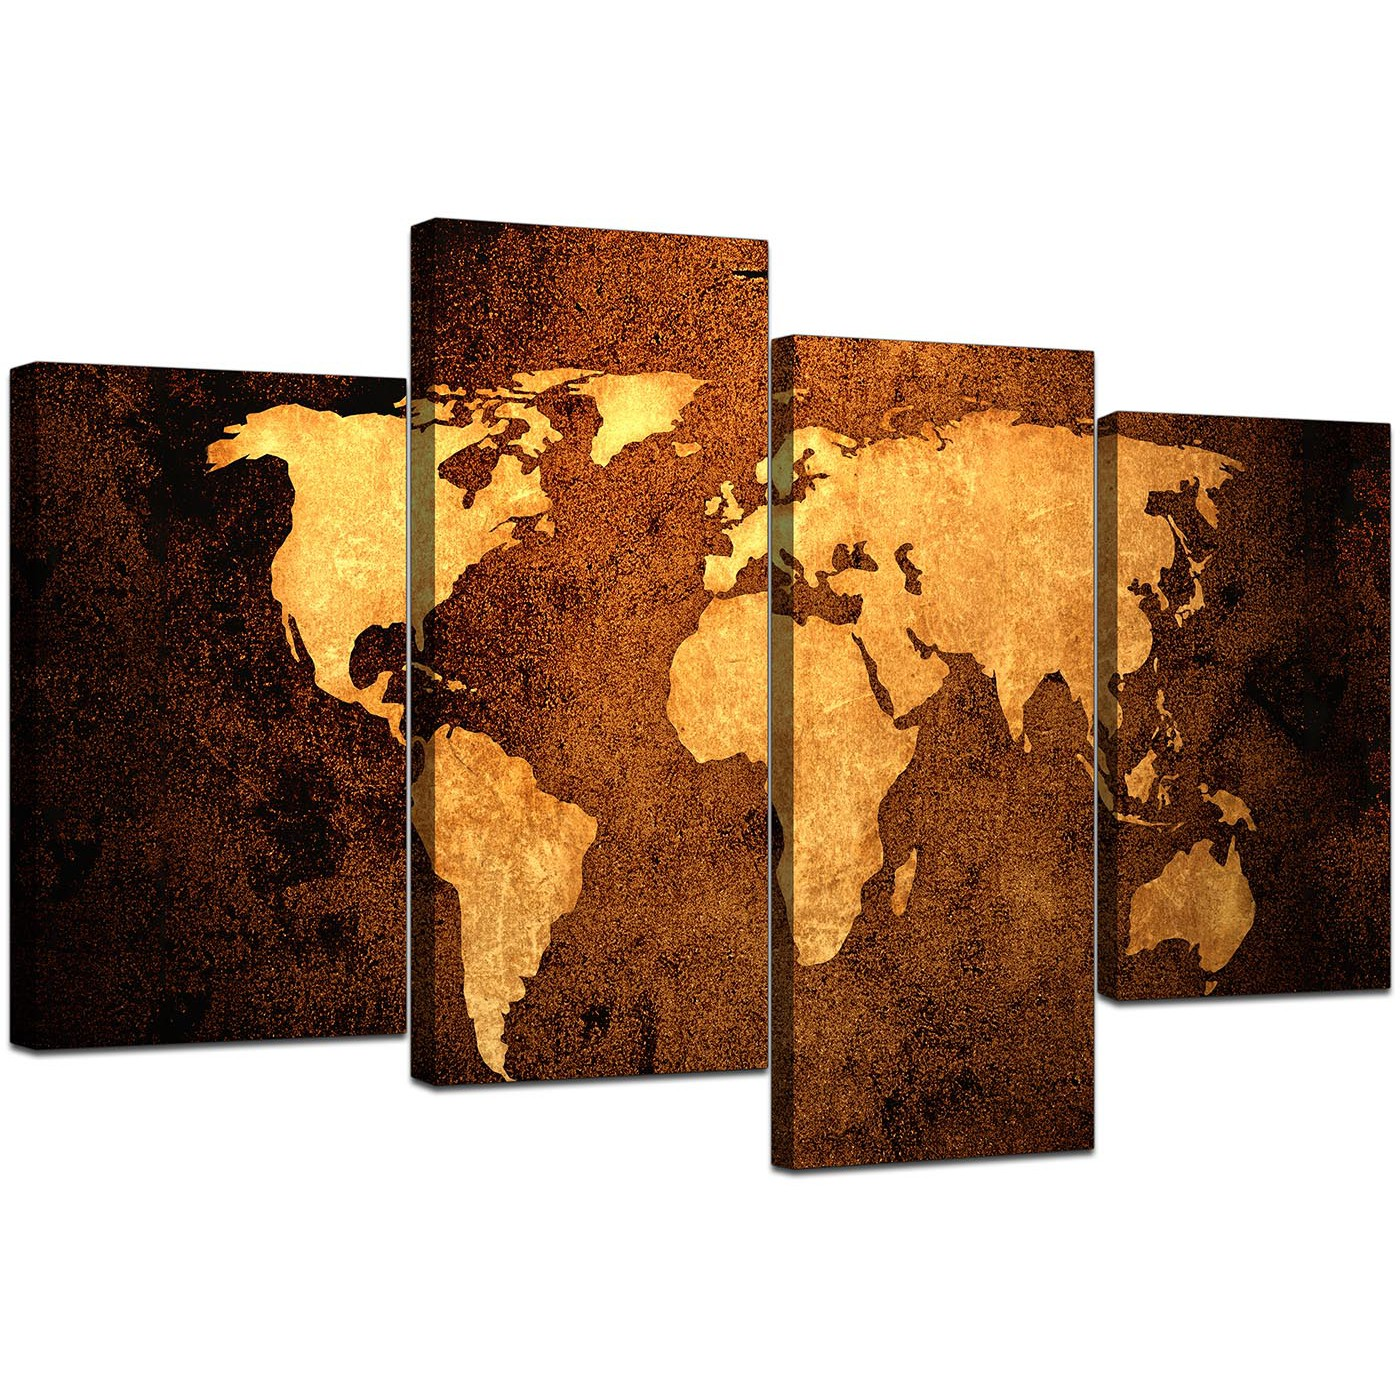 Canvas pictures of a world map in brown for your bedroom world map canvas art in antique style for office display gallery item 1 gumiabroncs Image collections